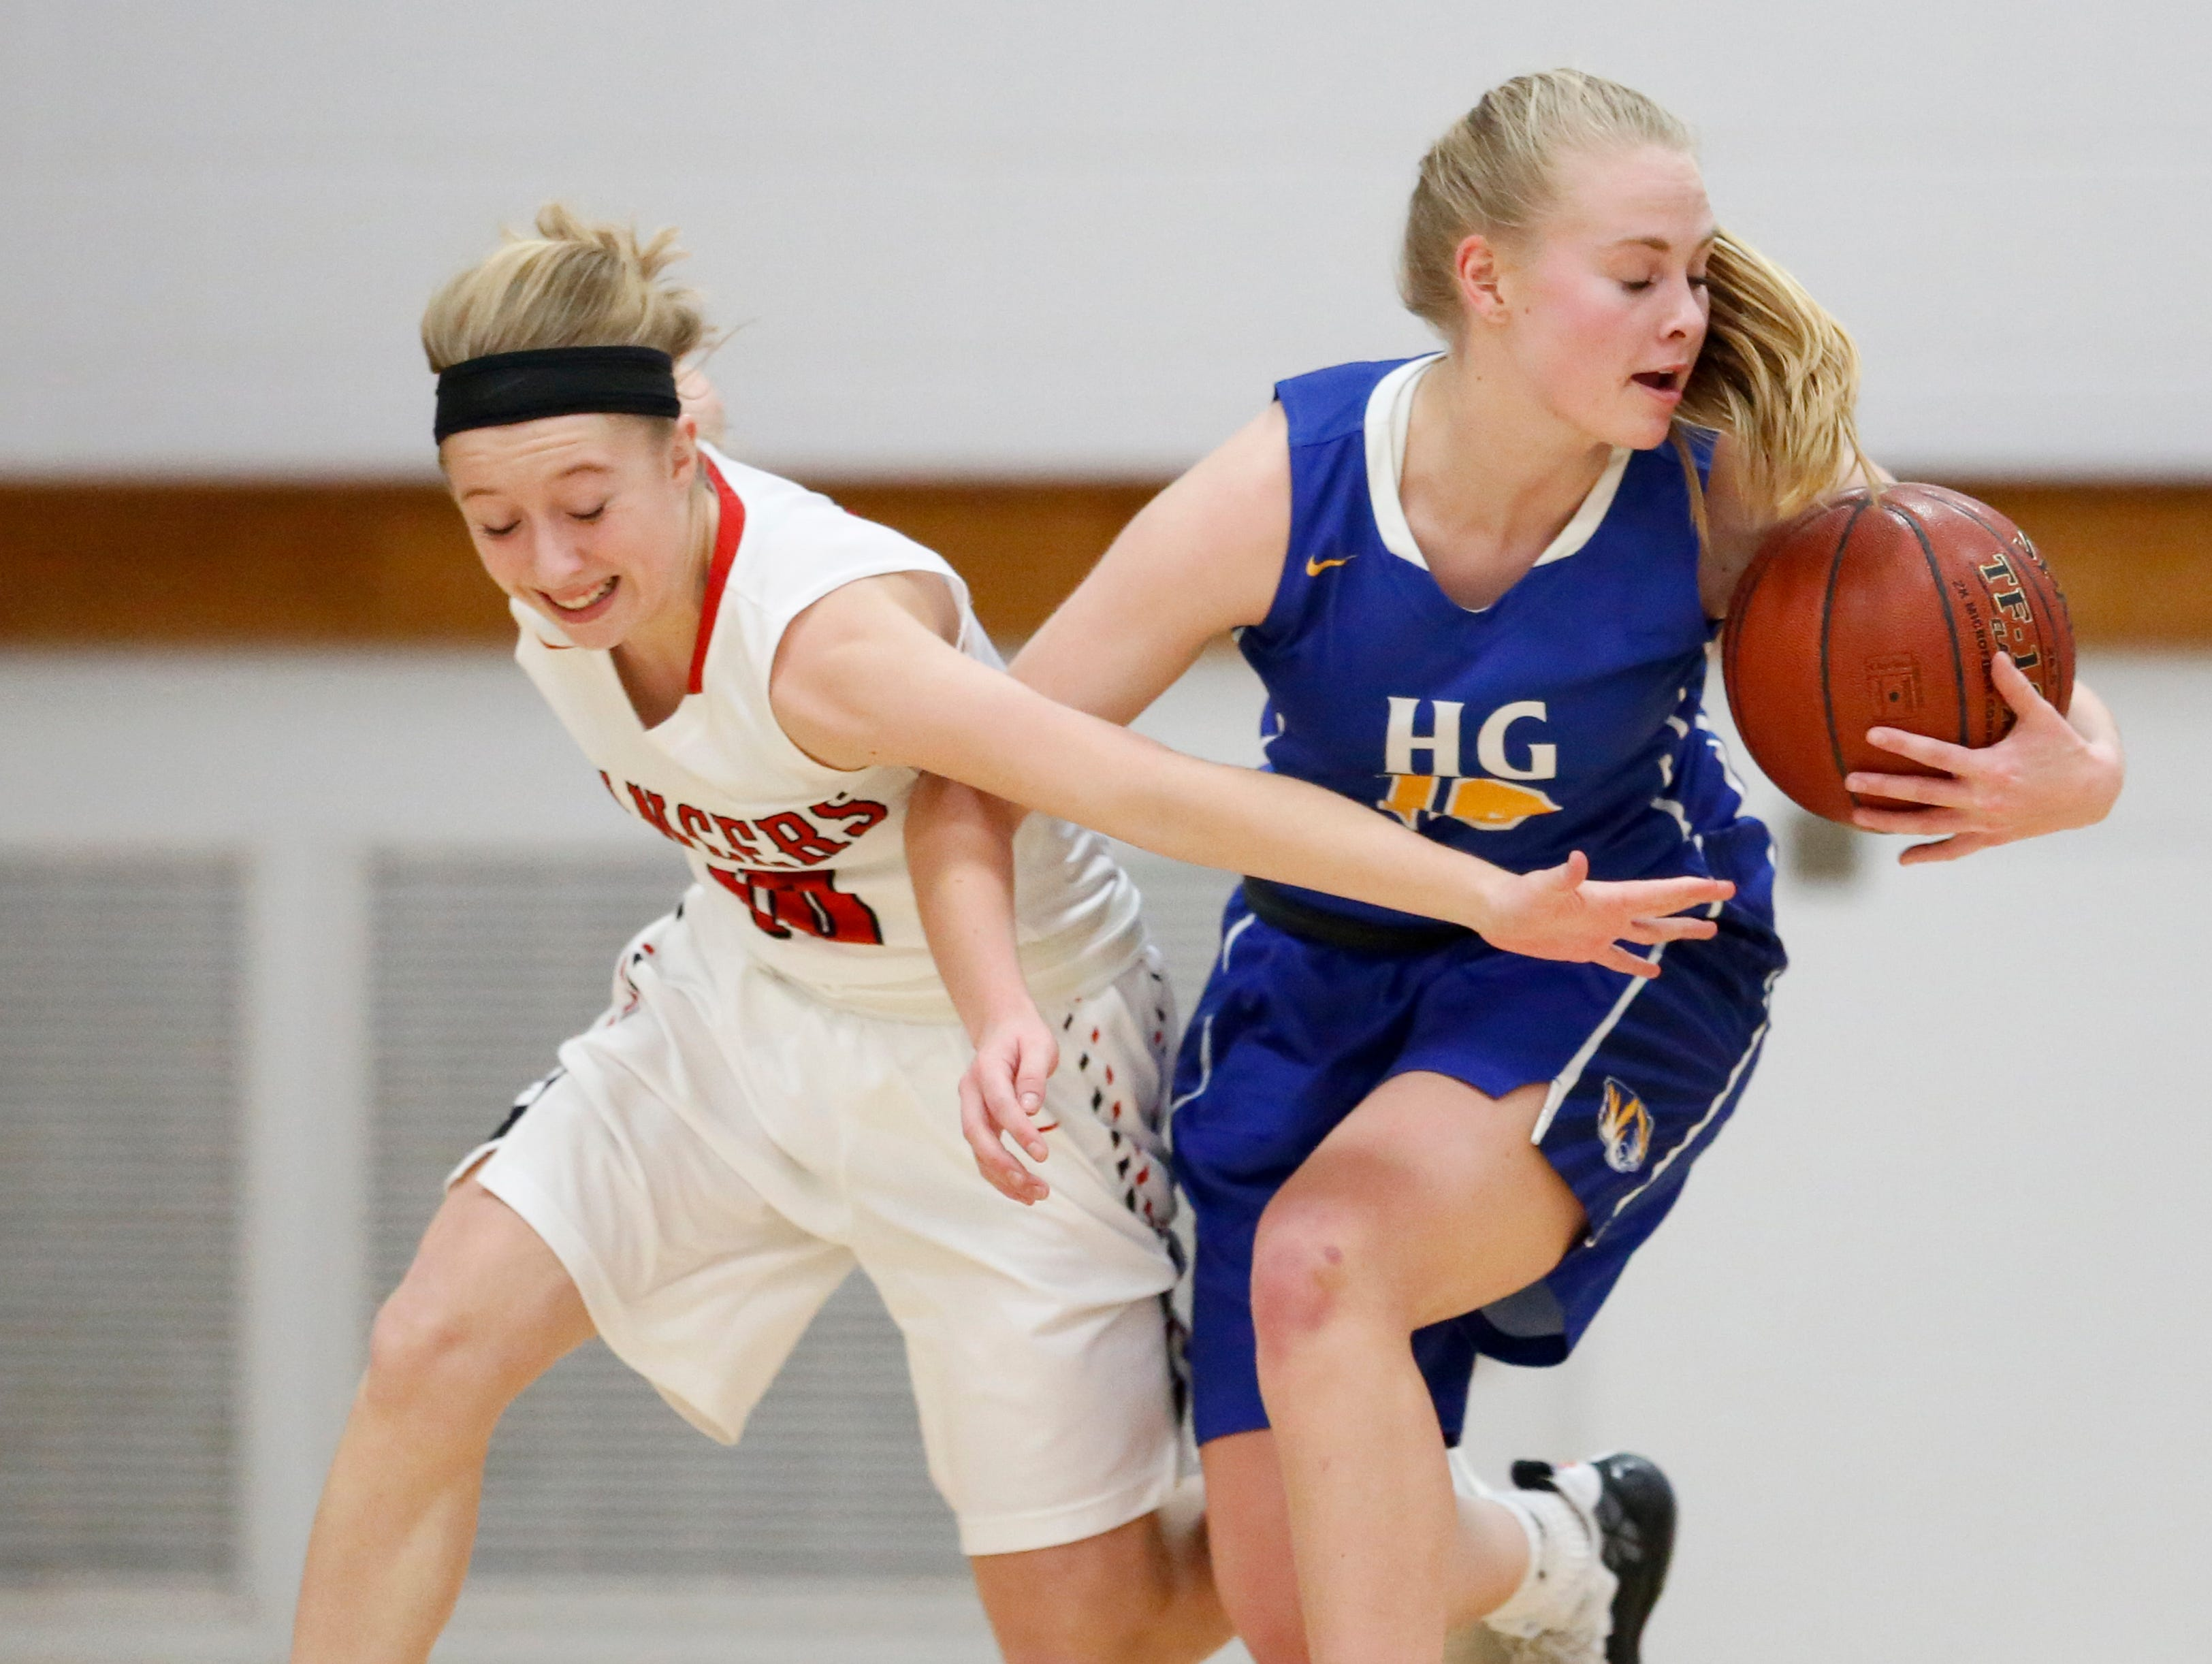 Howards Grove's Leah Parnitzke wins a loose ball from Manitowoc Lutheran's Mady Hurkmans at Manitowoc Lutheran High School Tuesday, December 18, 2018, in Manitowoc, Wis. Joshua Clark/USA TODAY NETWORK-Wisconsin